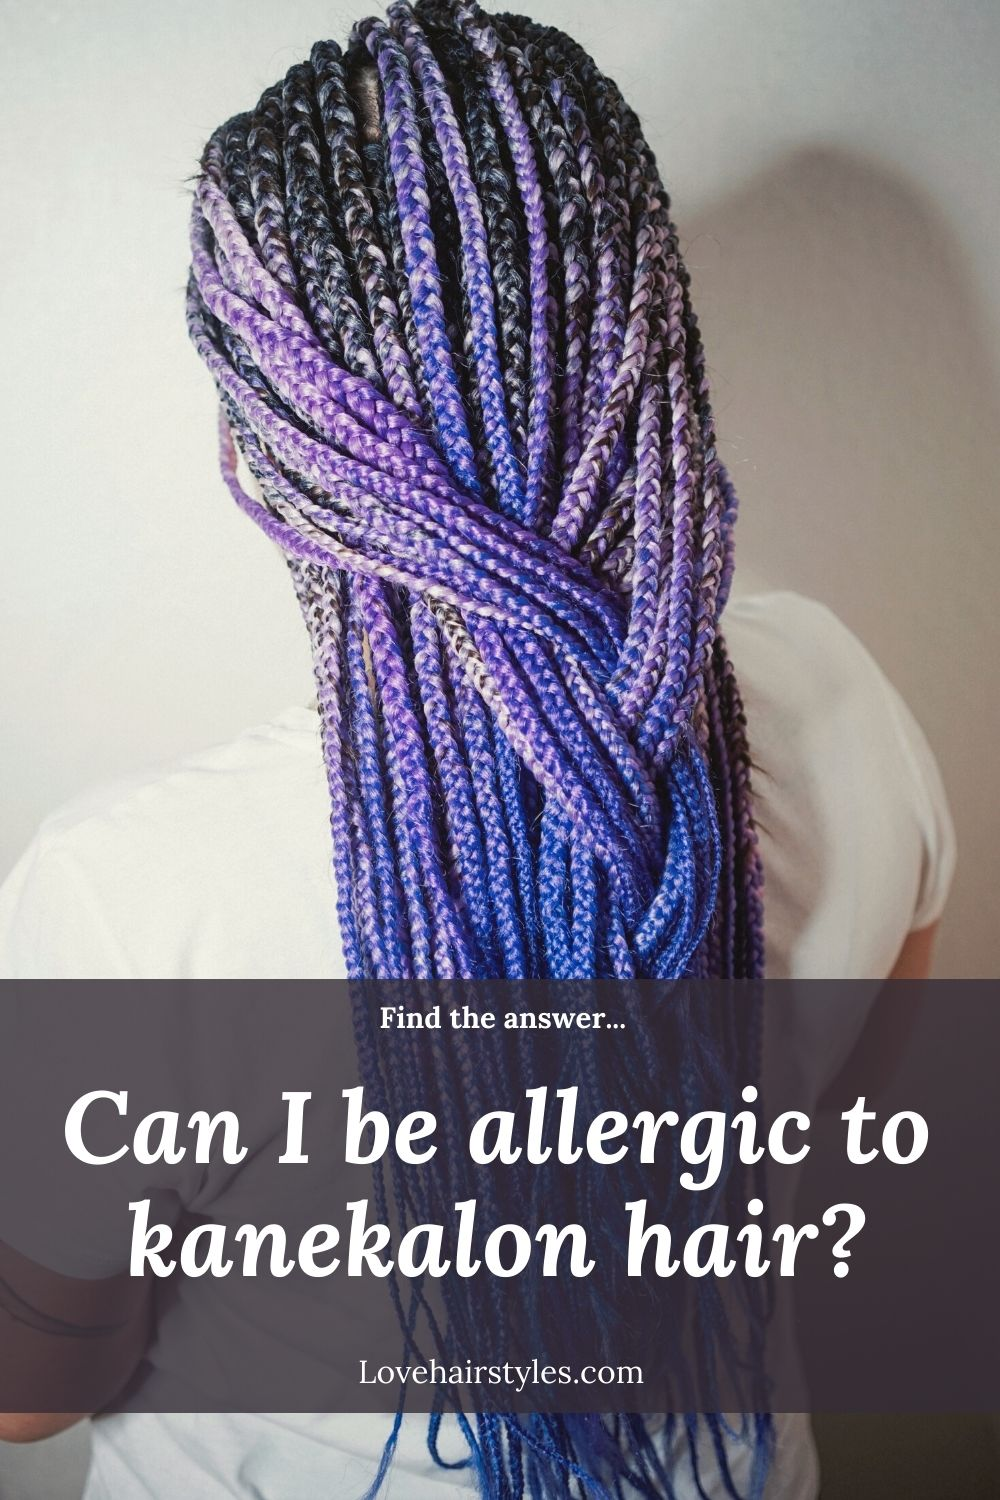 Can you be allergic to kanekalon hair?